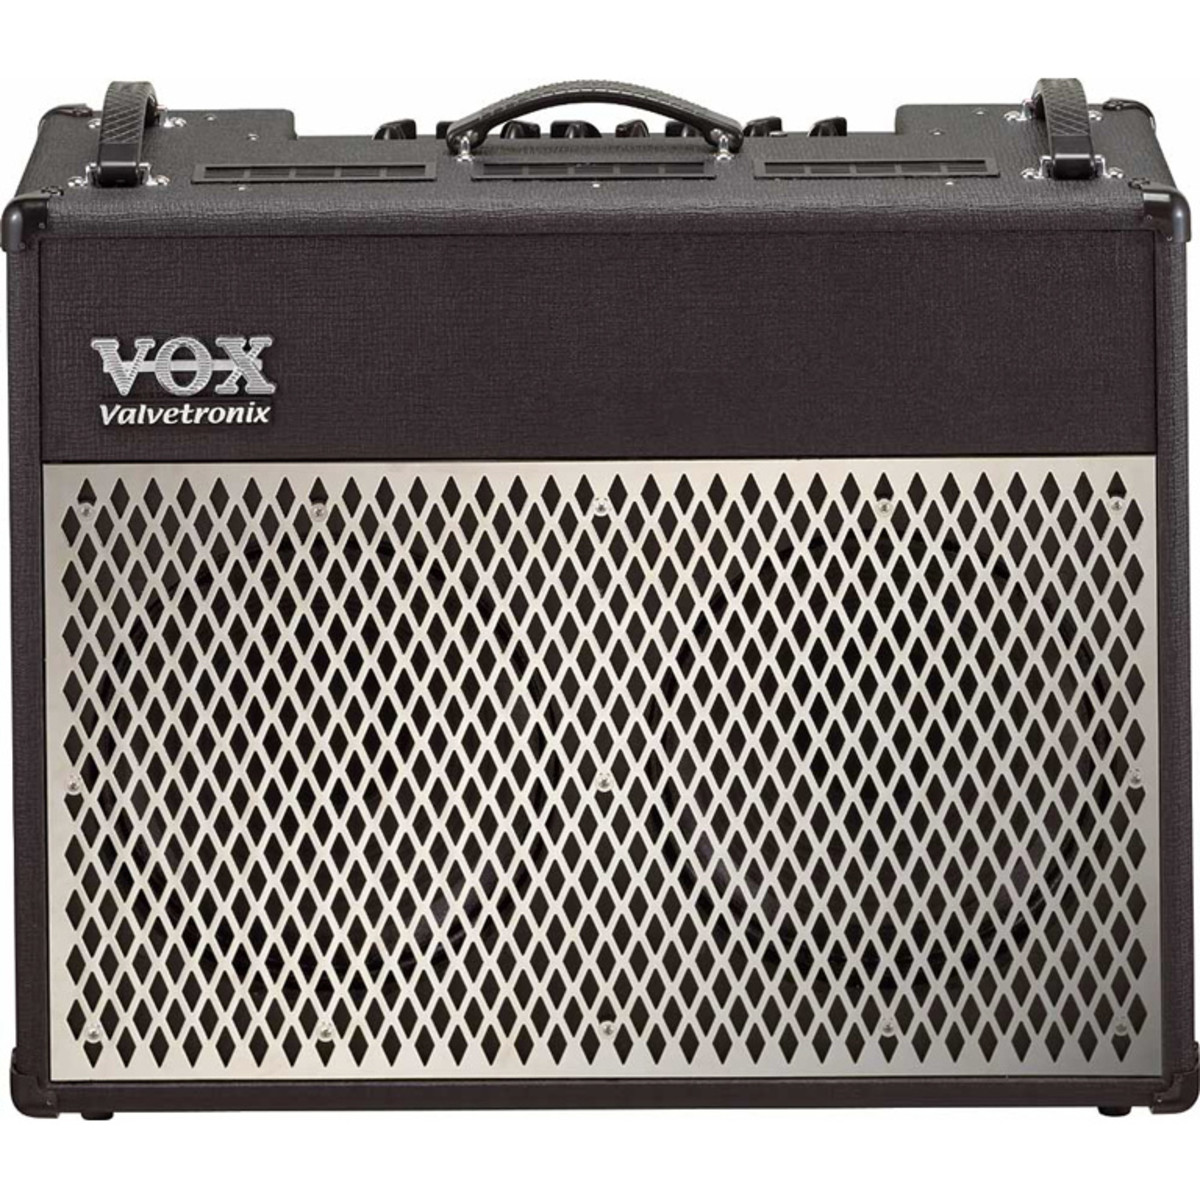 Disc Vox Ad100vt Valvetronix Guitar Amp At Gear4music 70 Watt Amplifier Circuit Preamplifier Tone Control For Loading Zoom